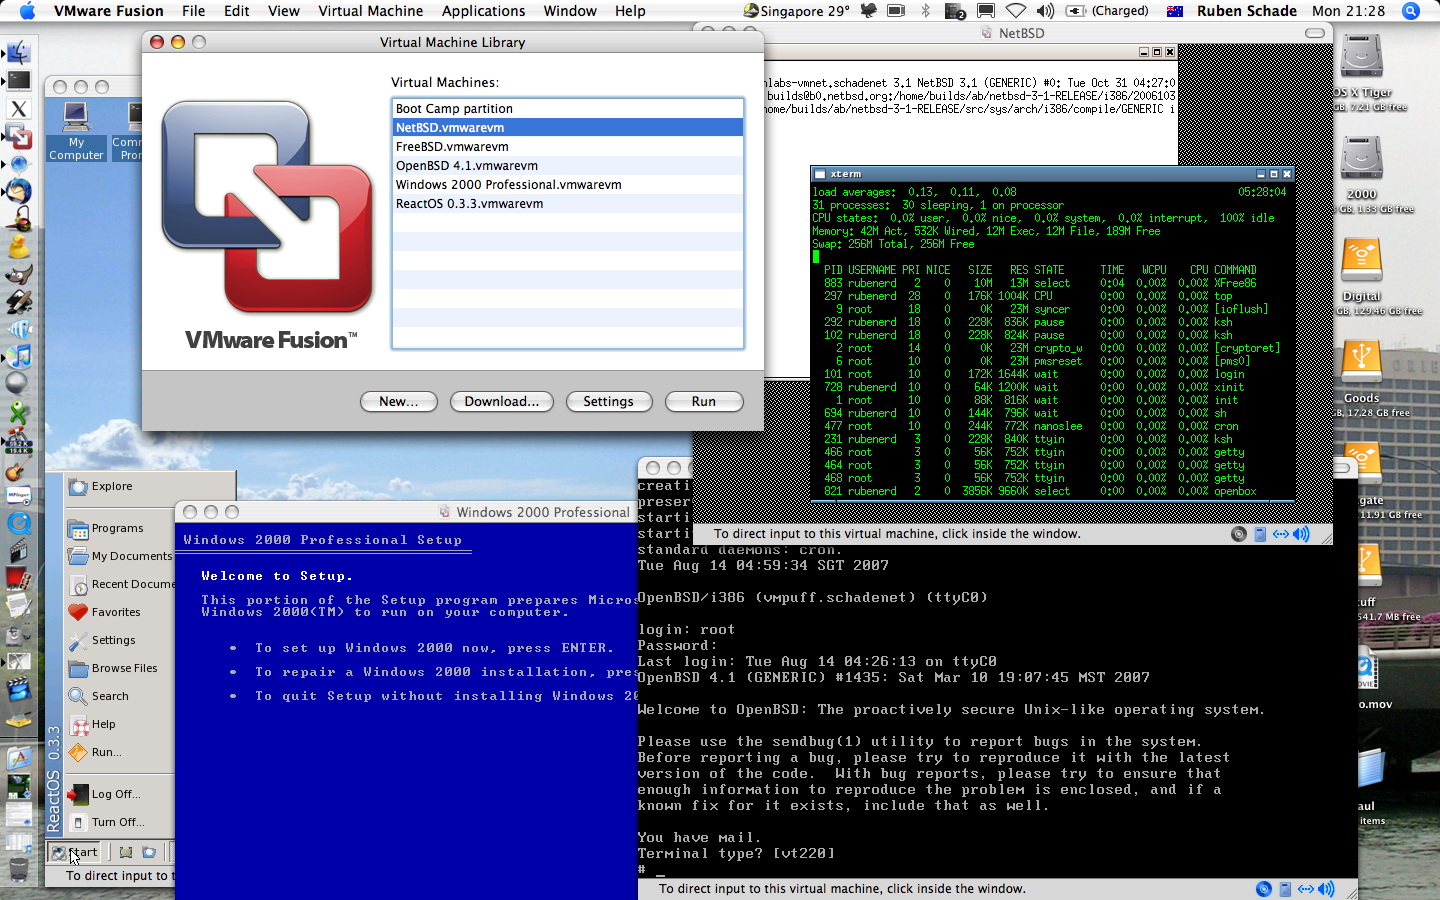 Kali linux for vmware fusion software